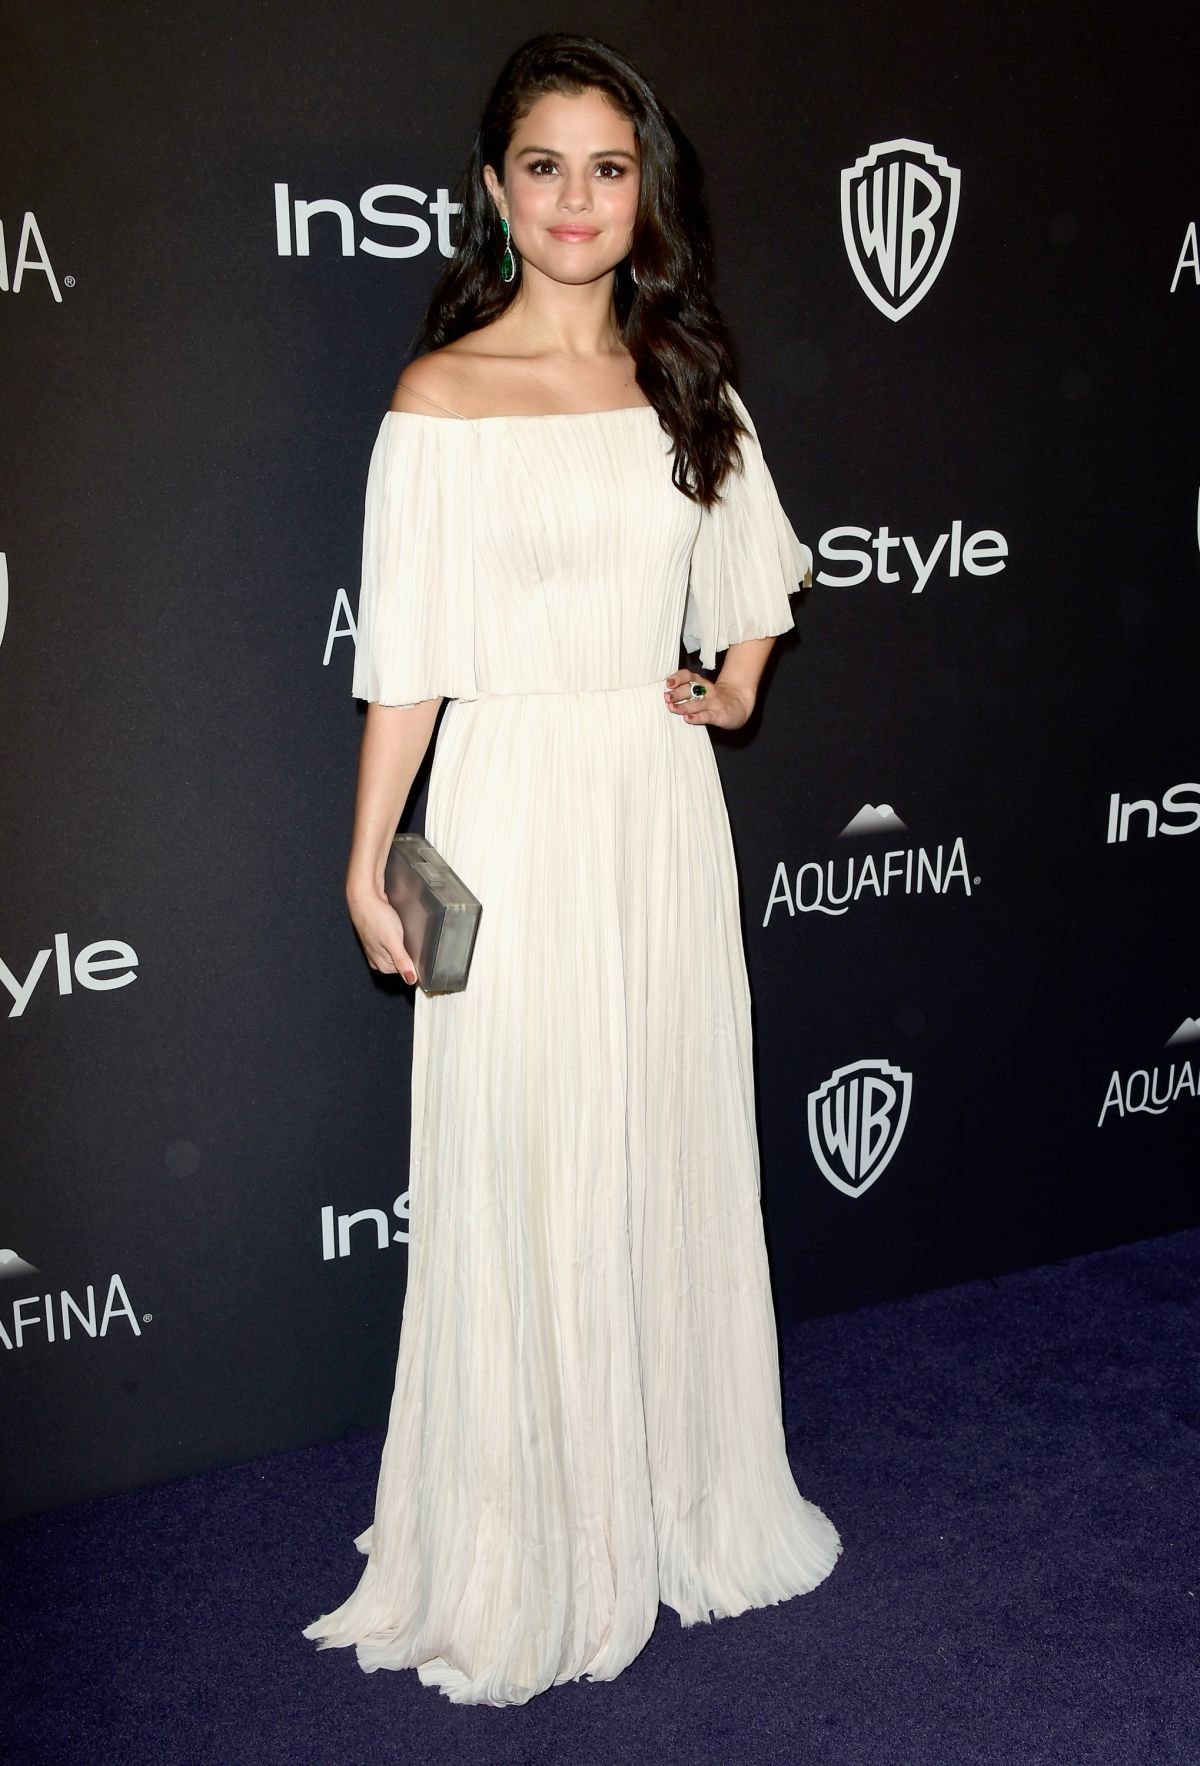 SELENA GOMEZ at Instyle and Warner Bros. 2016 Golden Globe Awards Post-party in Beverly Hills 01/10/2016